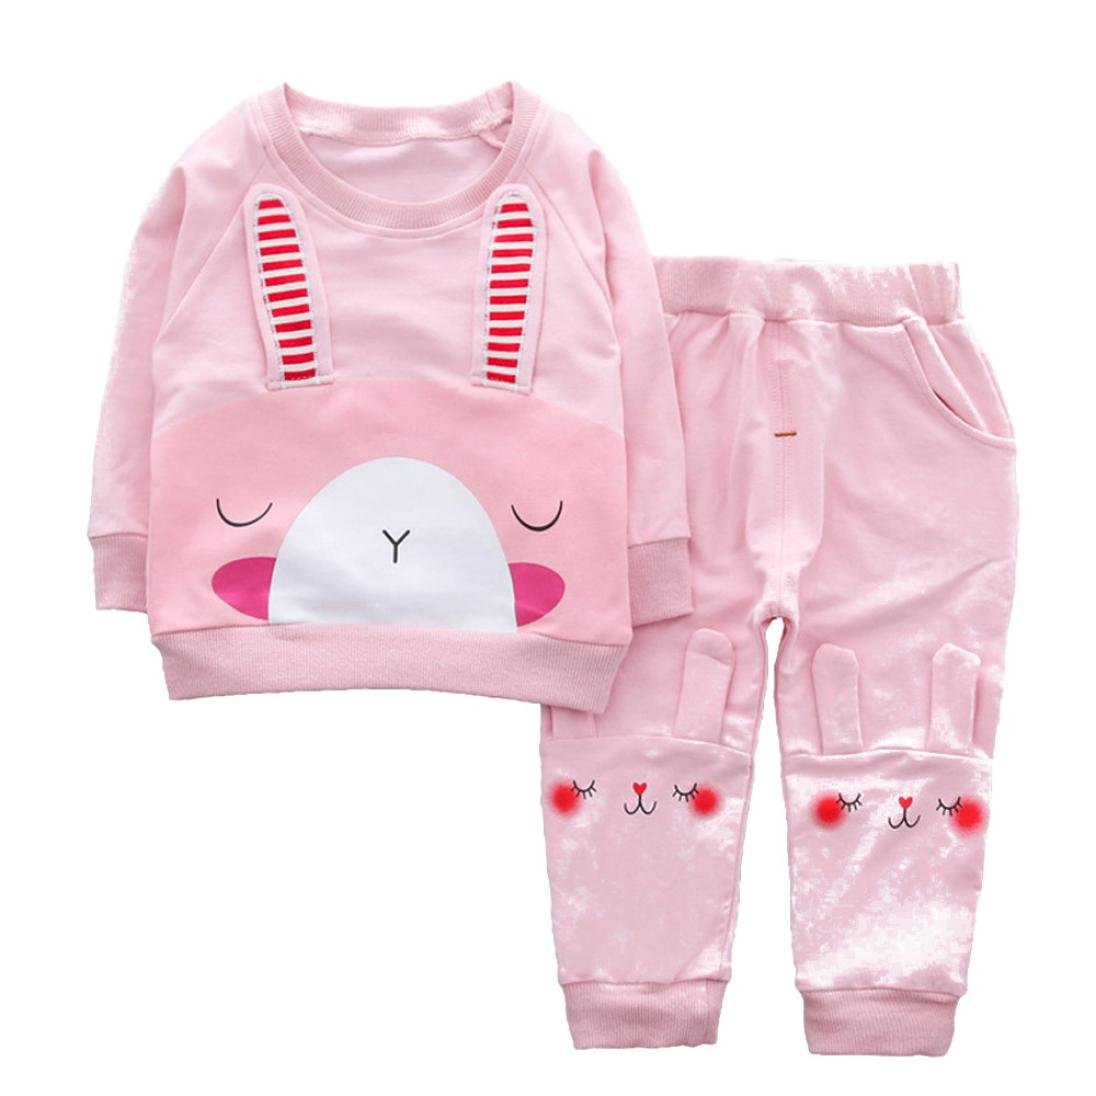 2 Piece Outfit For Baby Girls Boys Cute Bunny Style Long Sleeve Blouses Tops+Pants